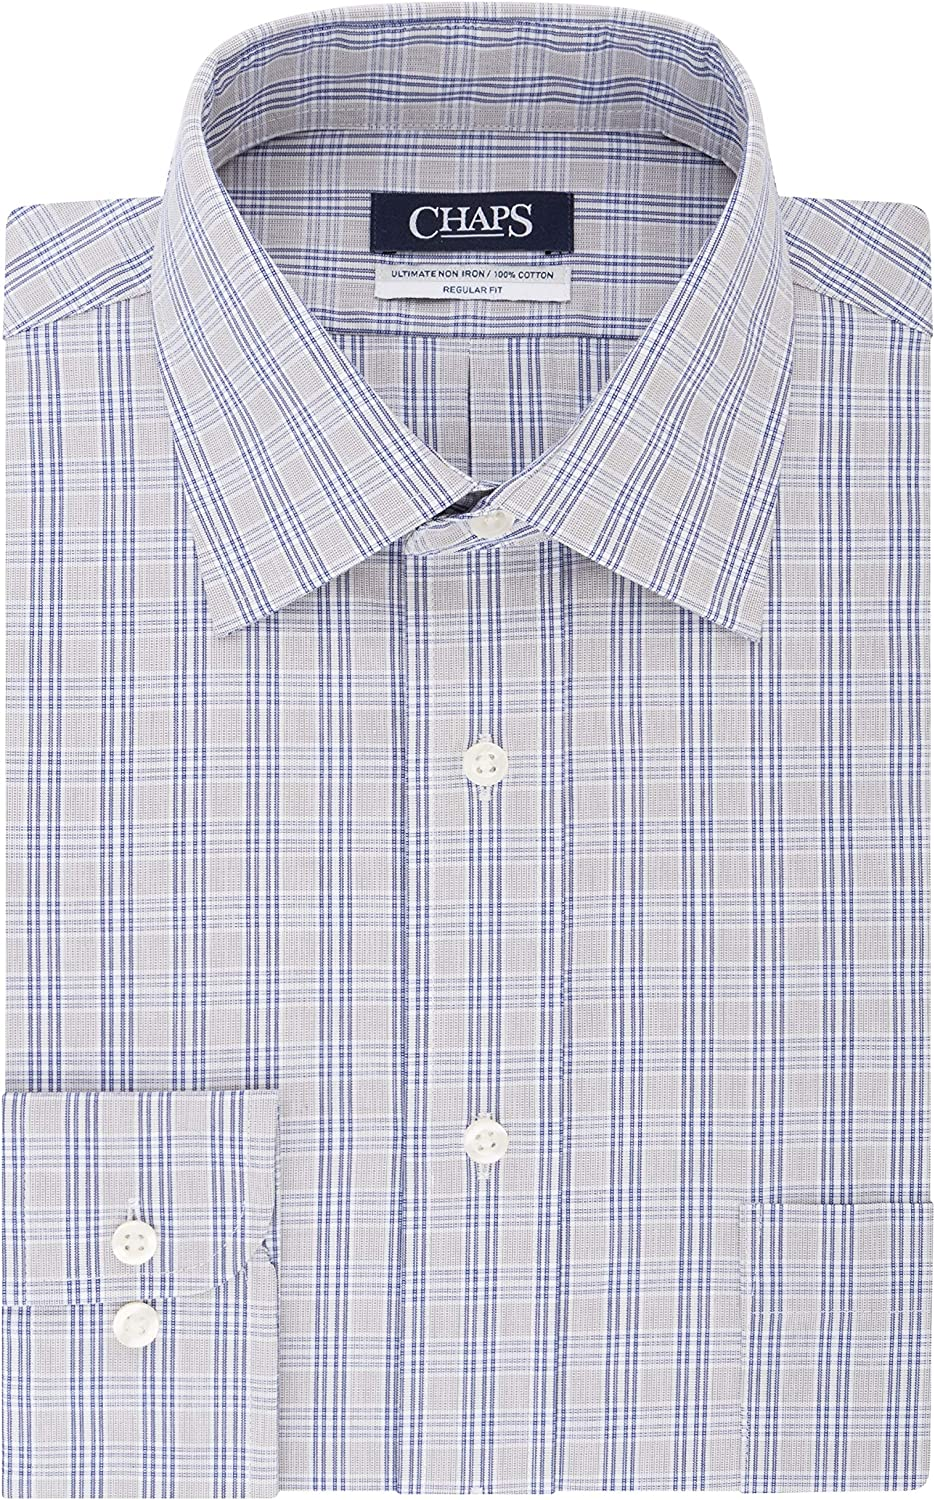 Chaps Mens Dress Shirts Regular Fit Stretch Spread Collar Plaid ...